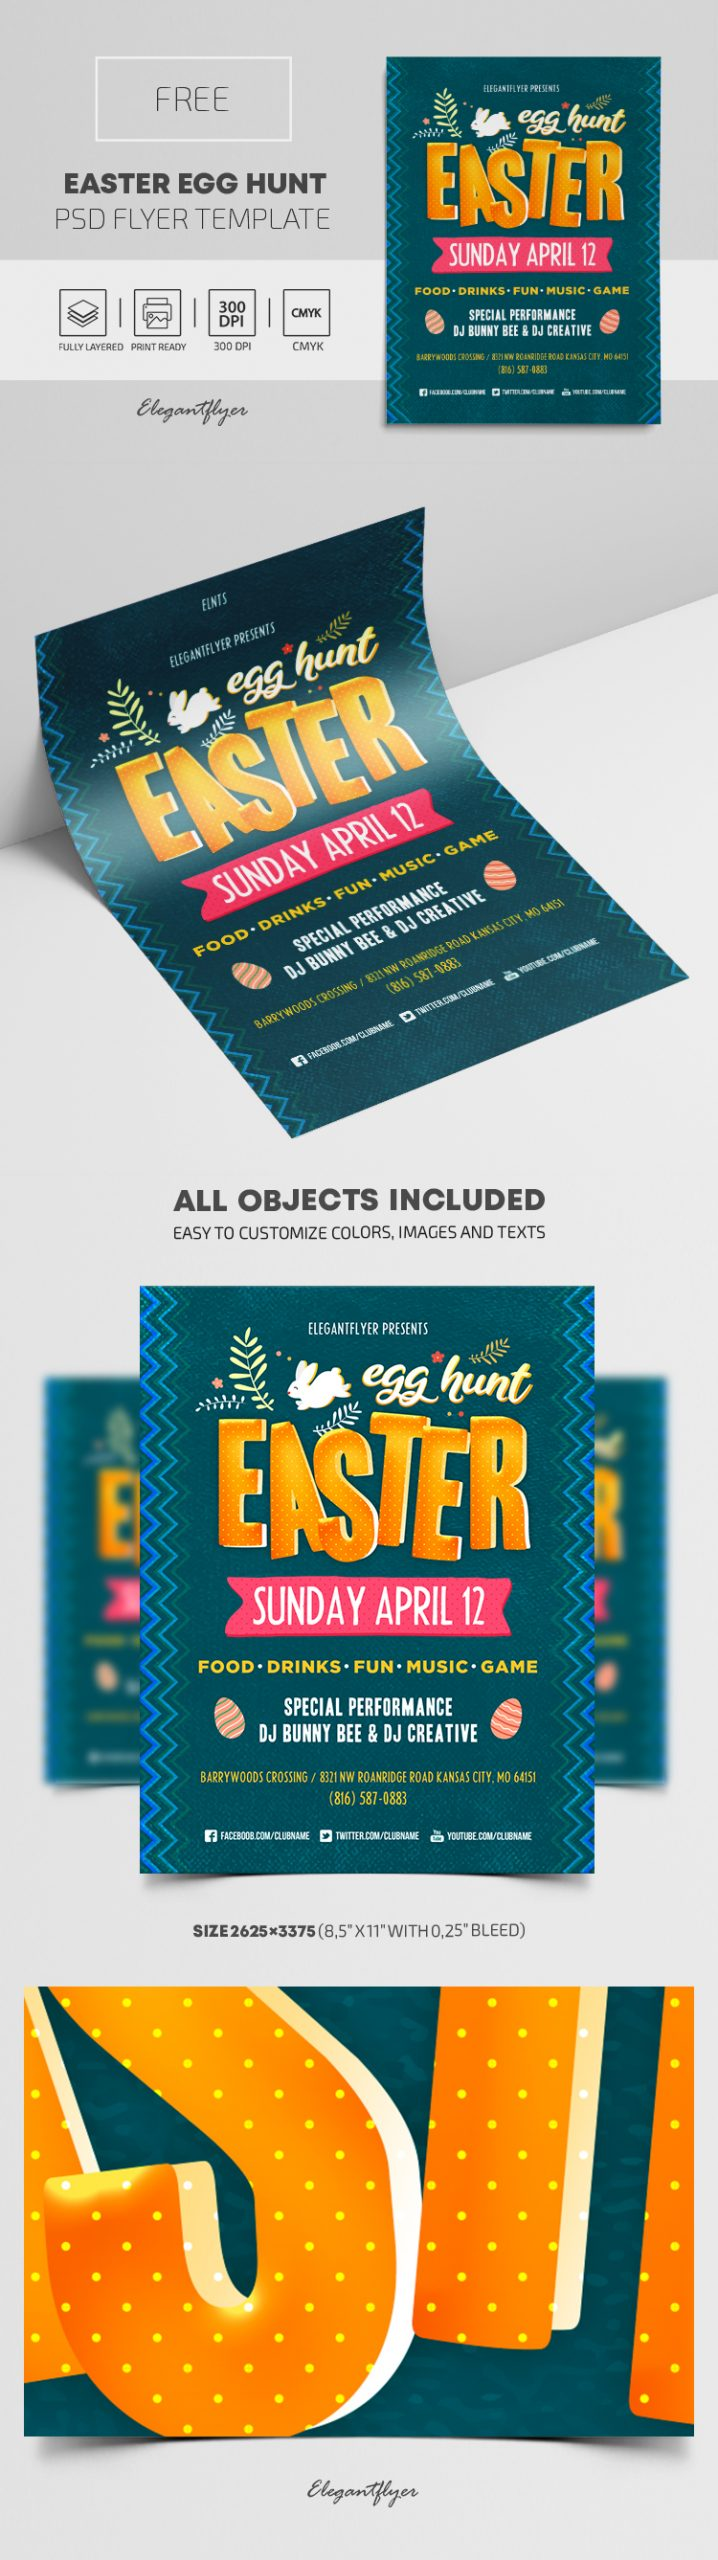 Easter Egg Hunt – Free PSD Flyer